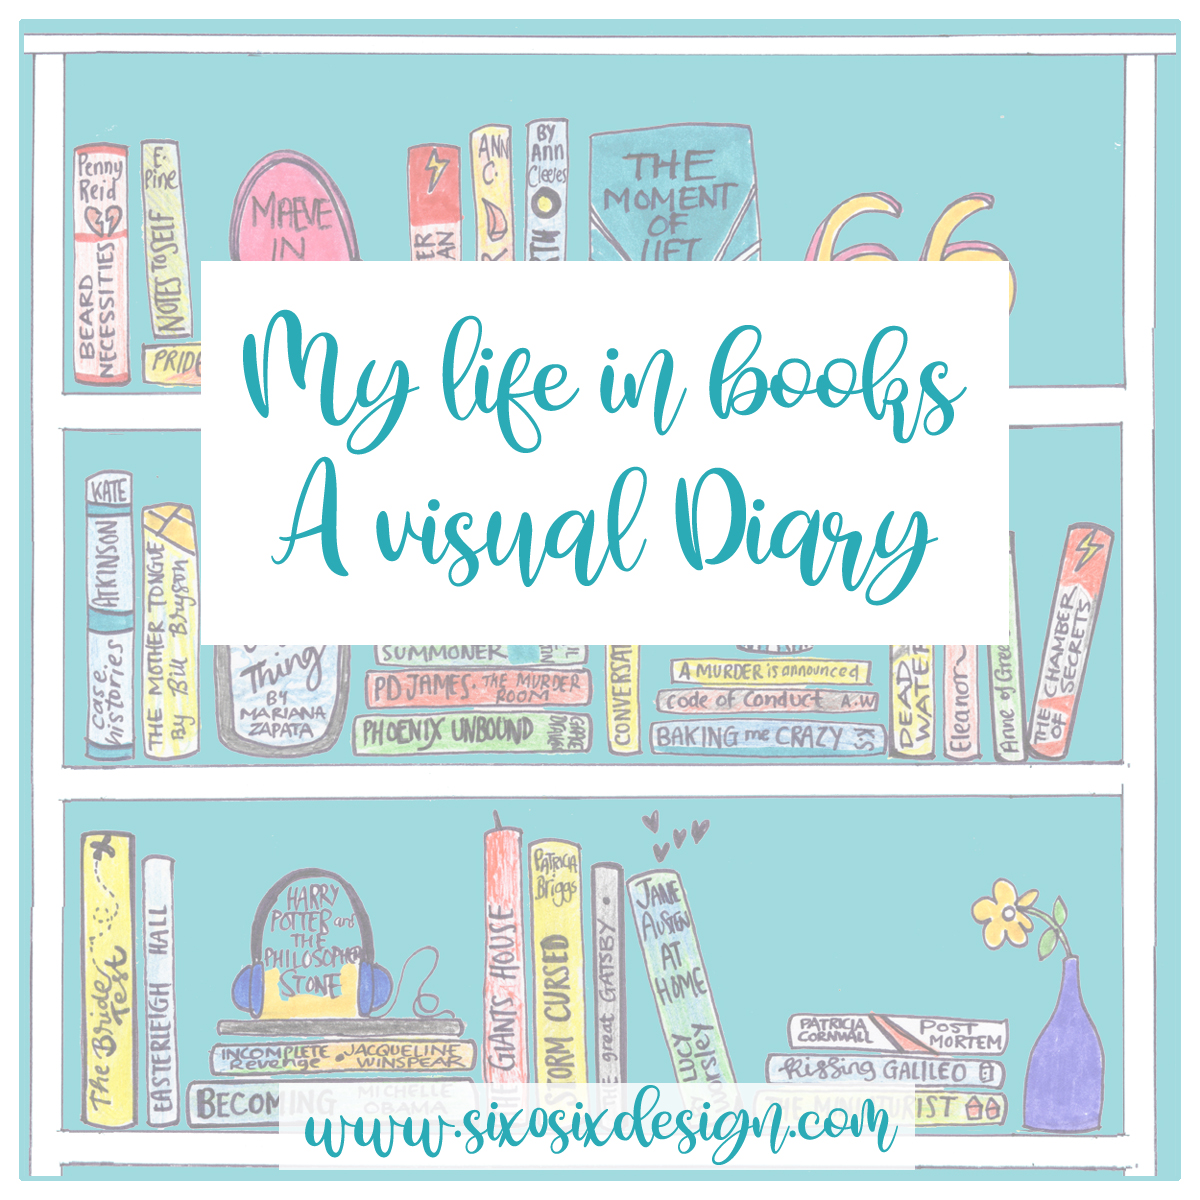 my life in books, a visual diary 2019 six0sixdesign